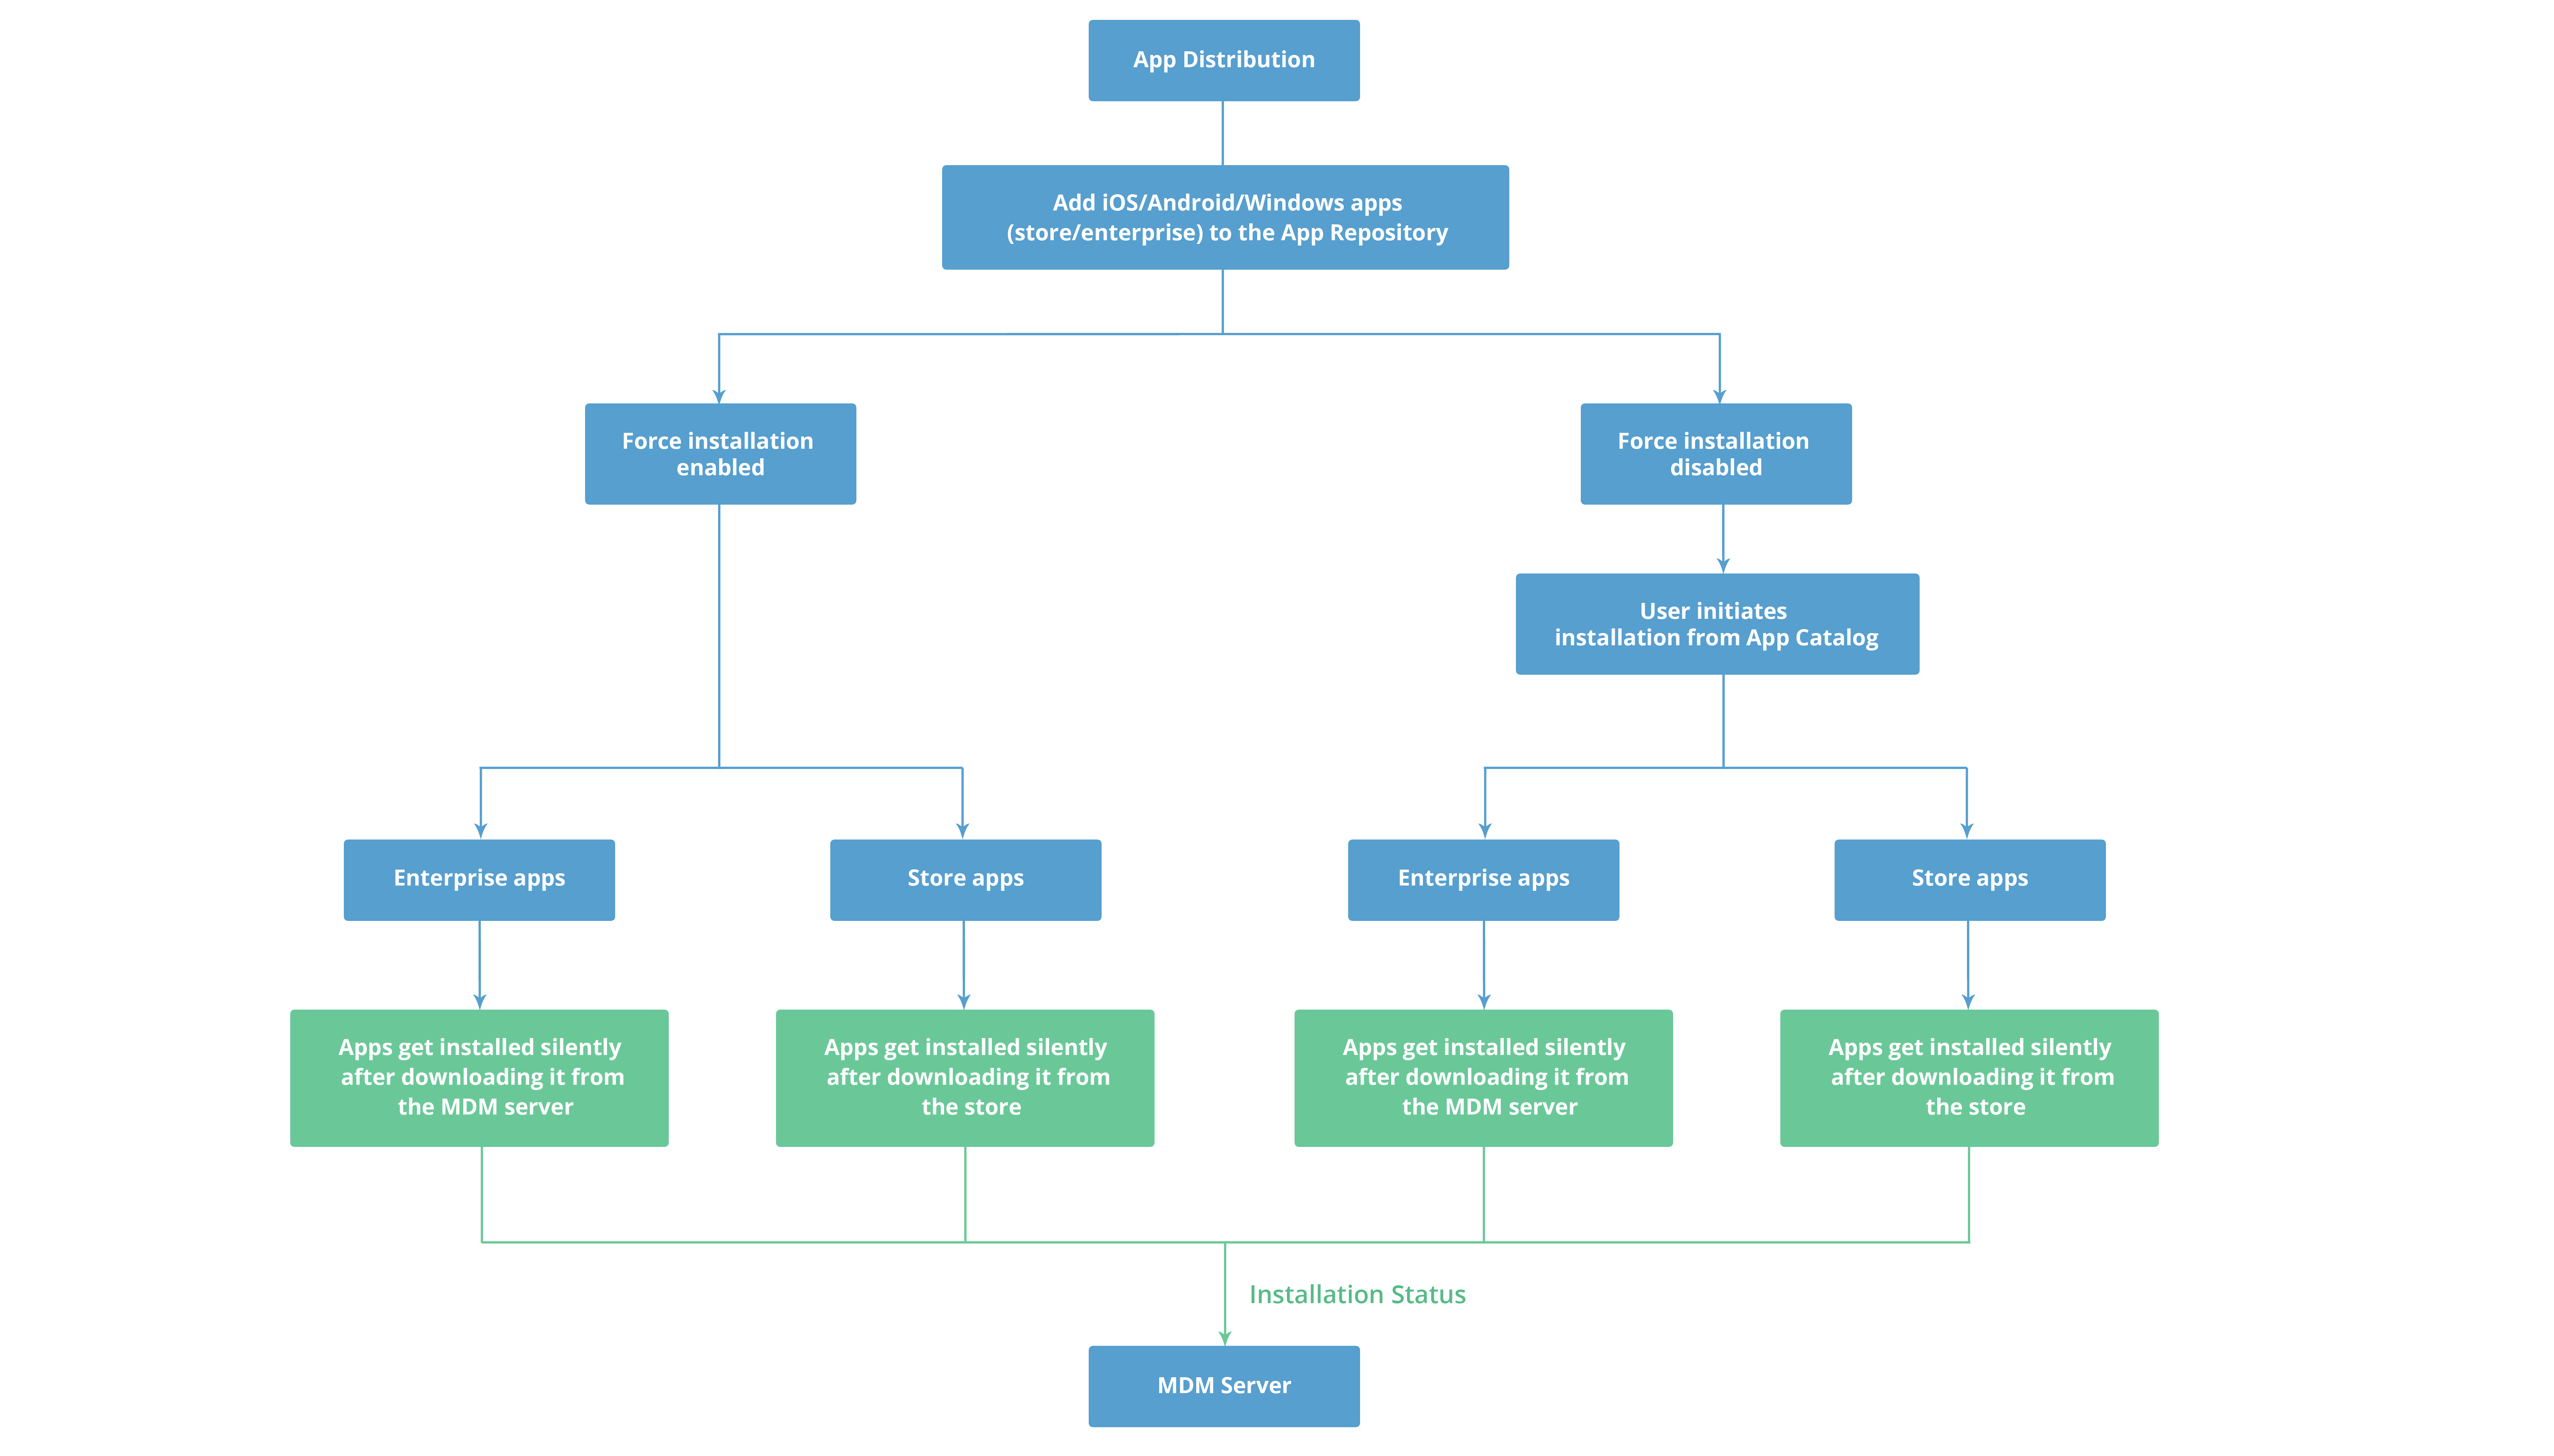 Mobile Application Management workflow